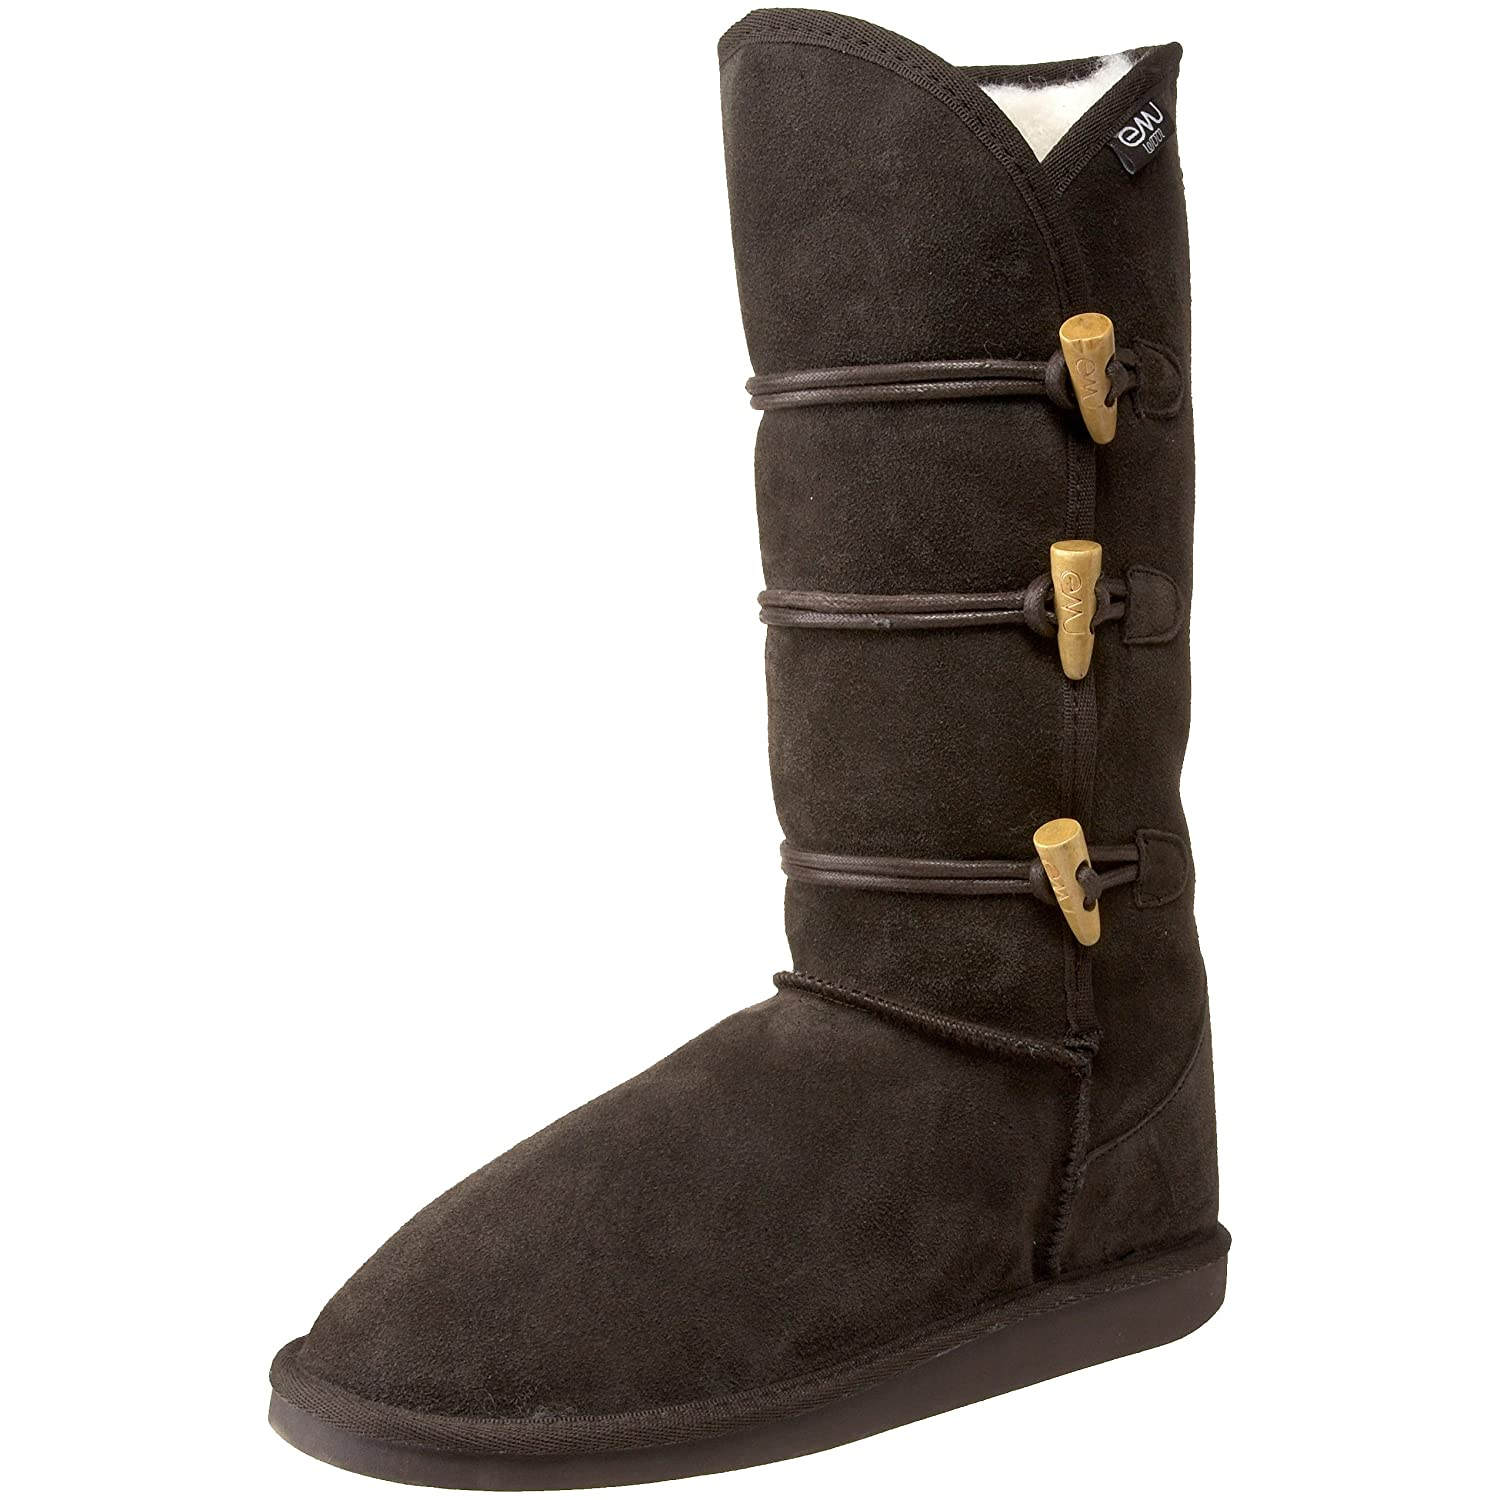 Gold Box Deal of the Day: Save 70% on Select EMU Australia Boots and Slippers